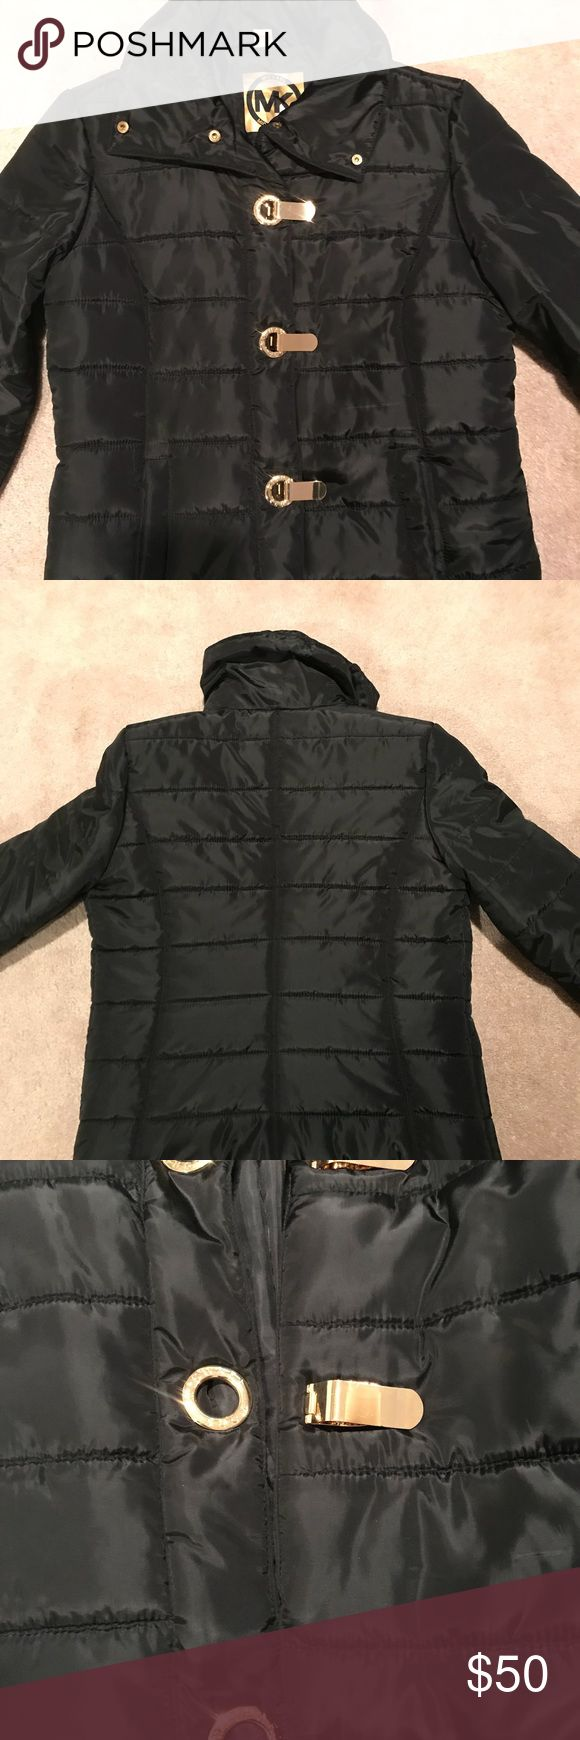 Michael Kors black small puffer coat Only worn a few times. Cozy light coat for winter with pretty gold hardware. Michael Kors Jackets & Coats Puffers